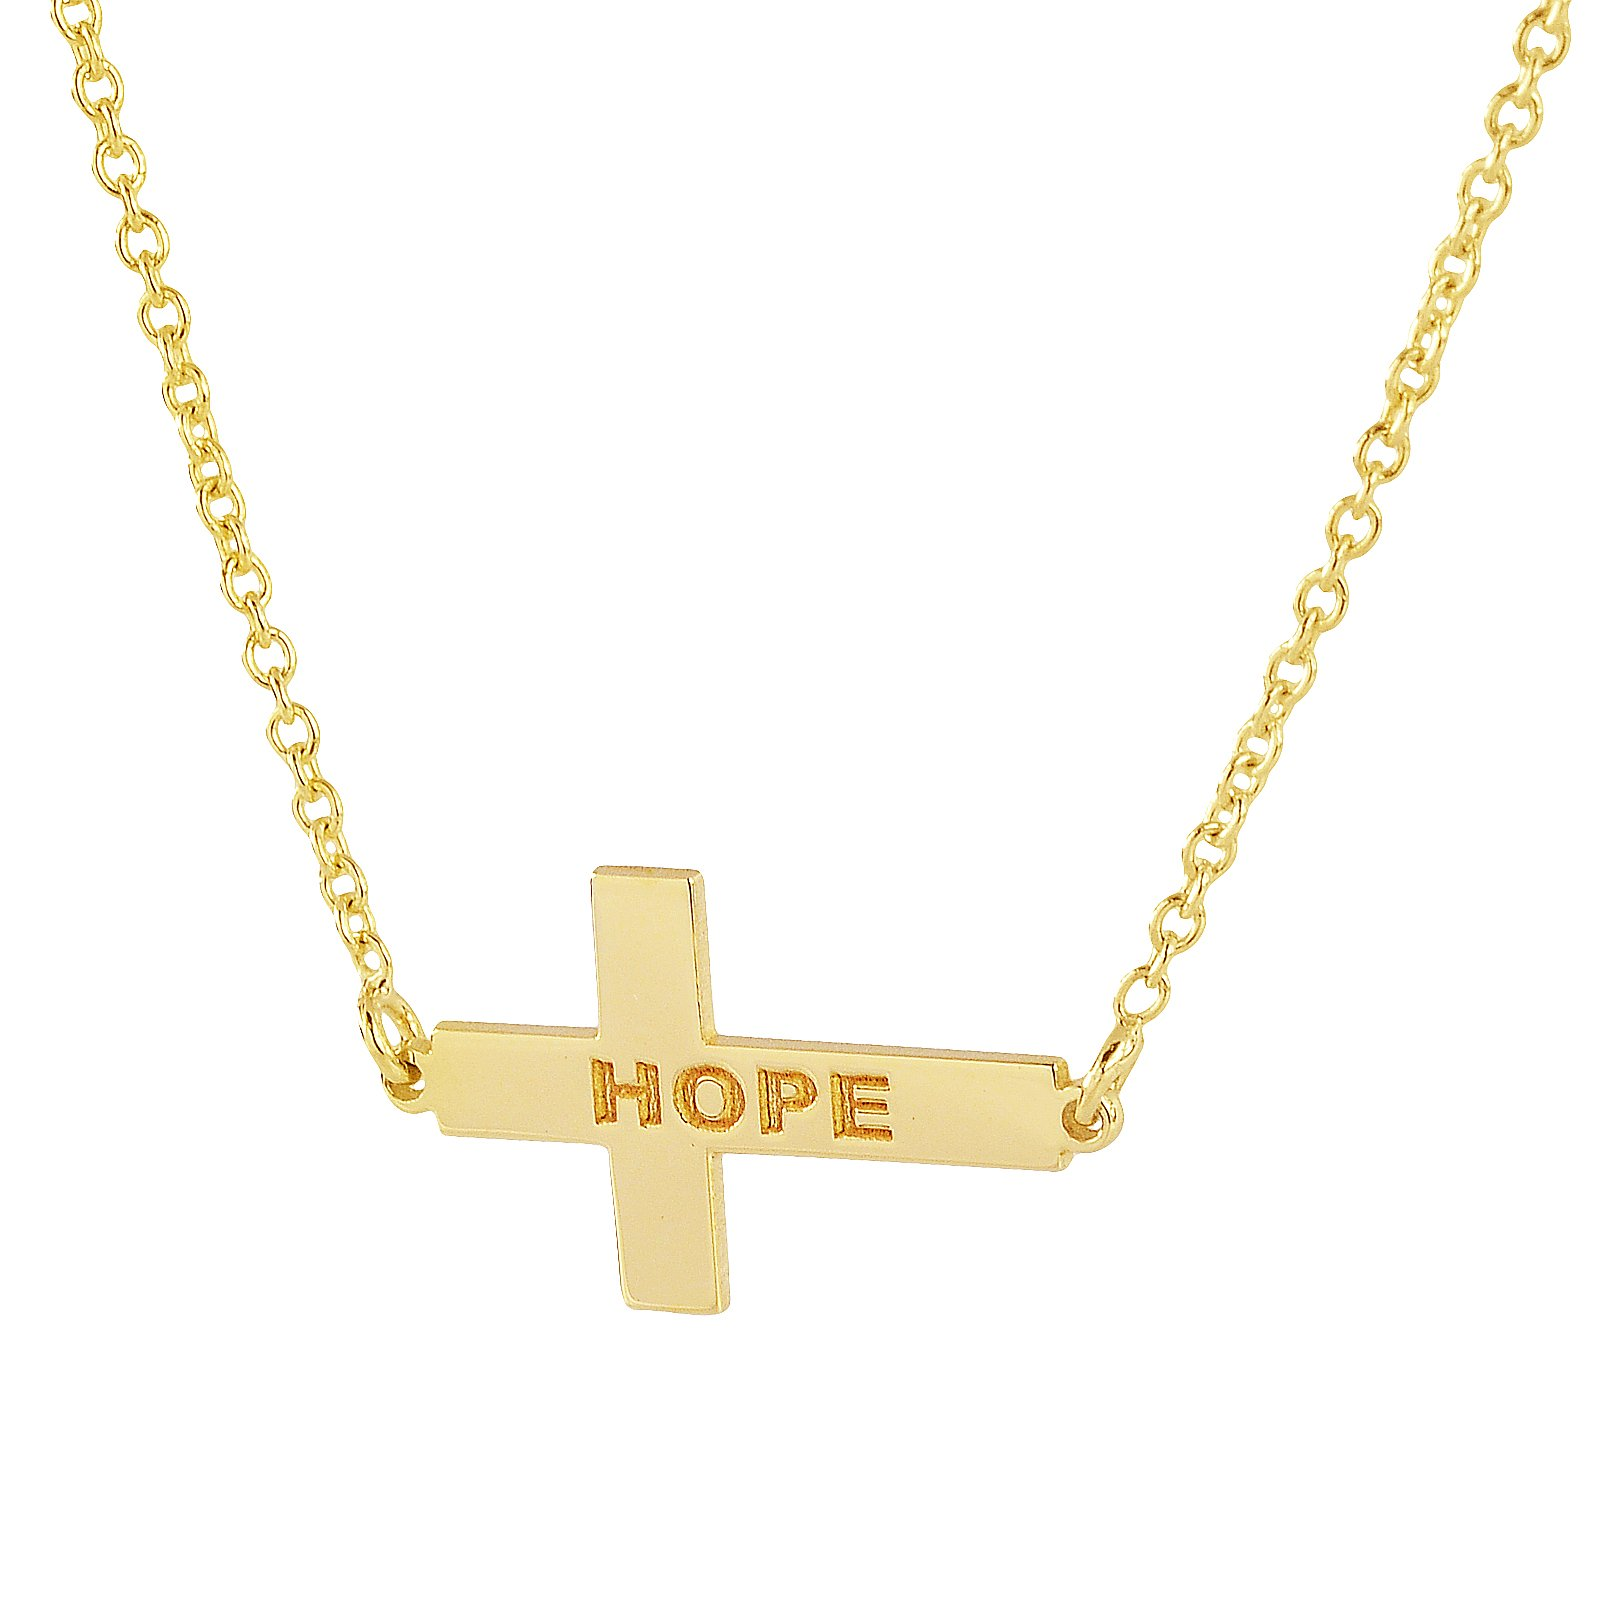 Solid 10K Yellow Gold TSmall iny Sideway Cross Charm Pendant Necklace Personalized Name Engraved (16 Inches, yellow-gold)